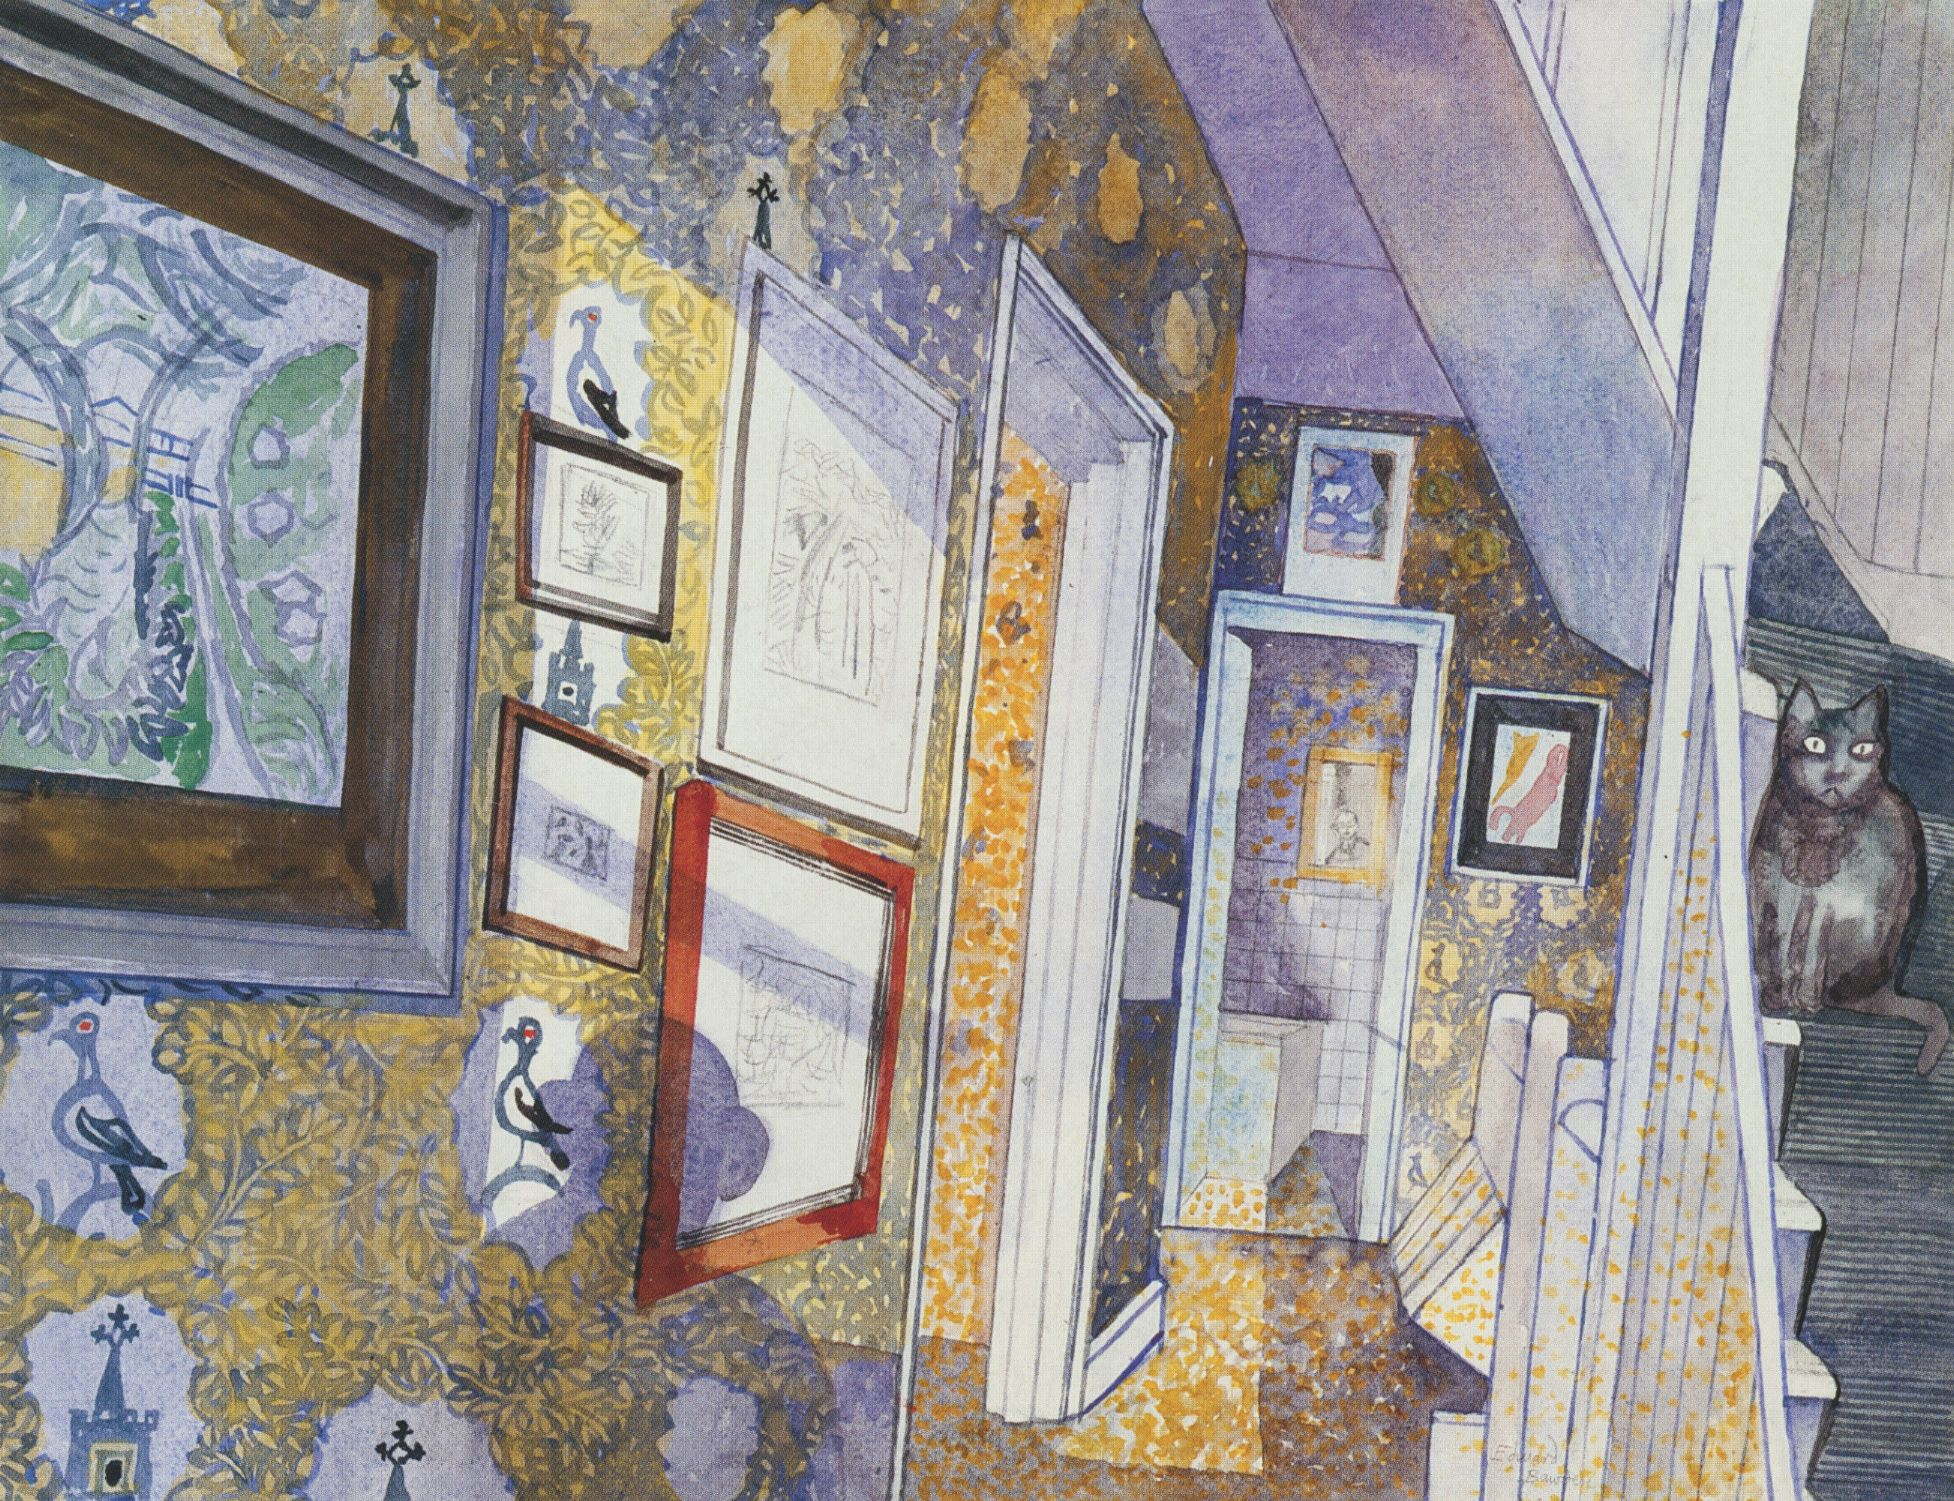 Edward Bawden, Silhouette and Cat